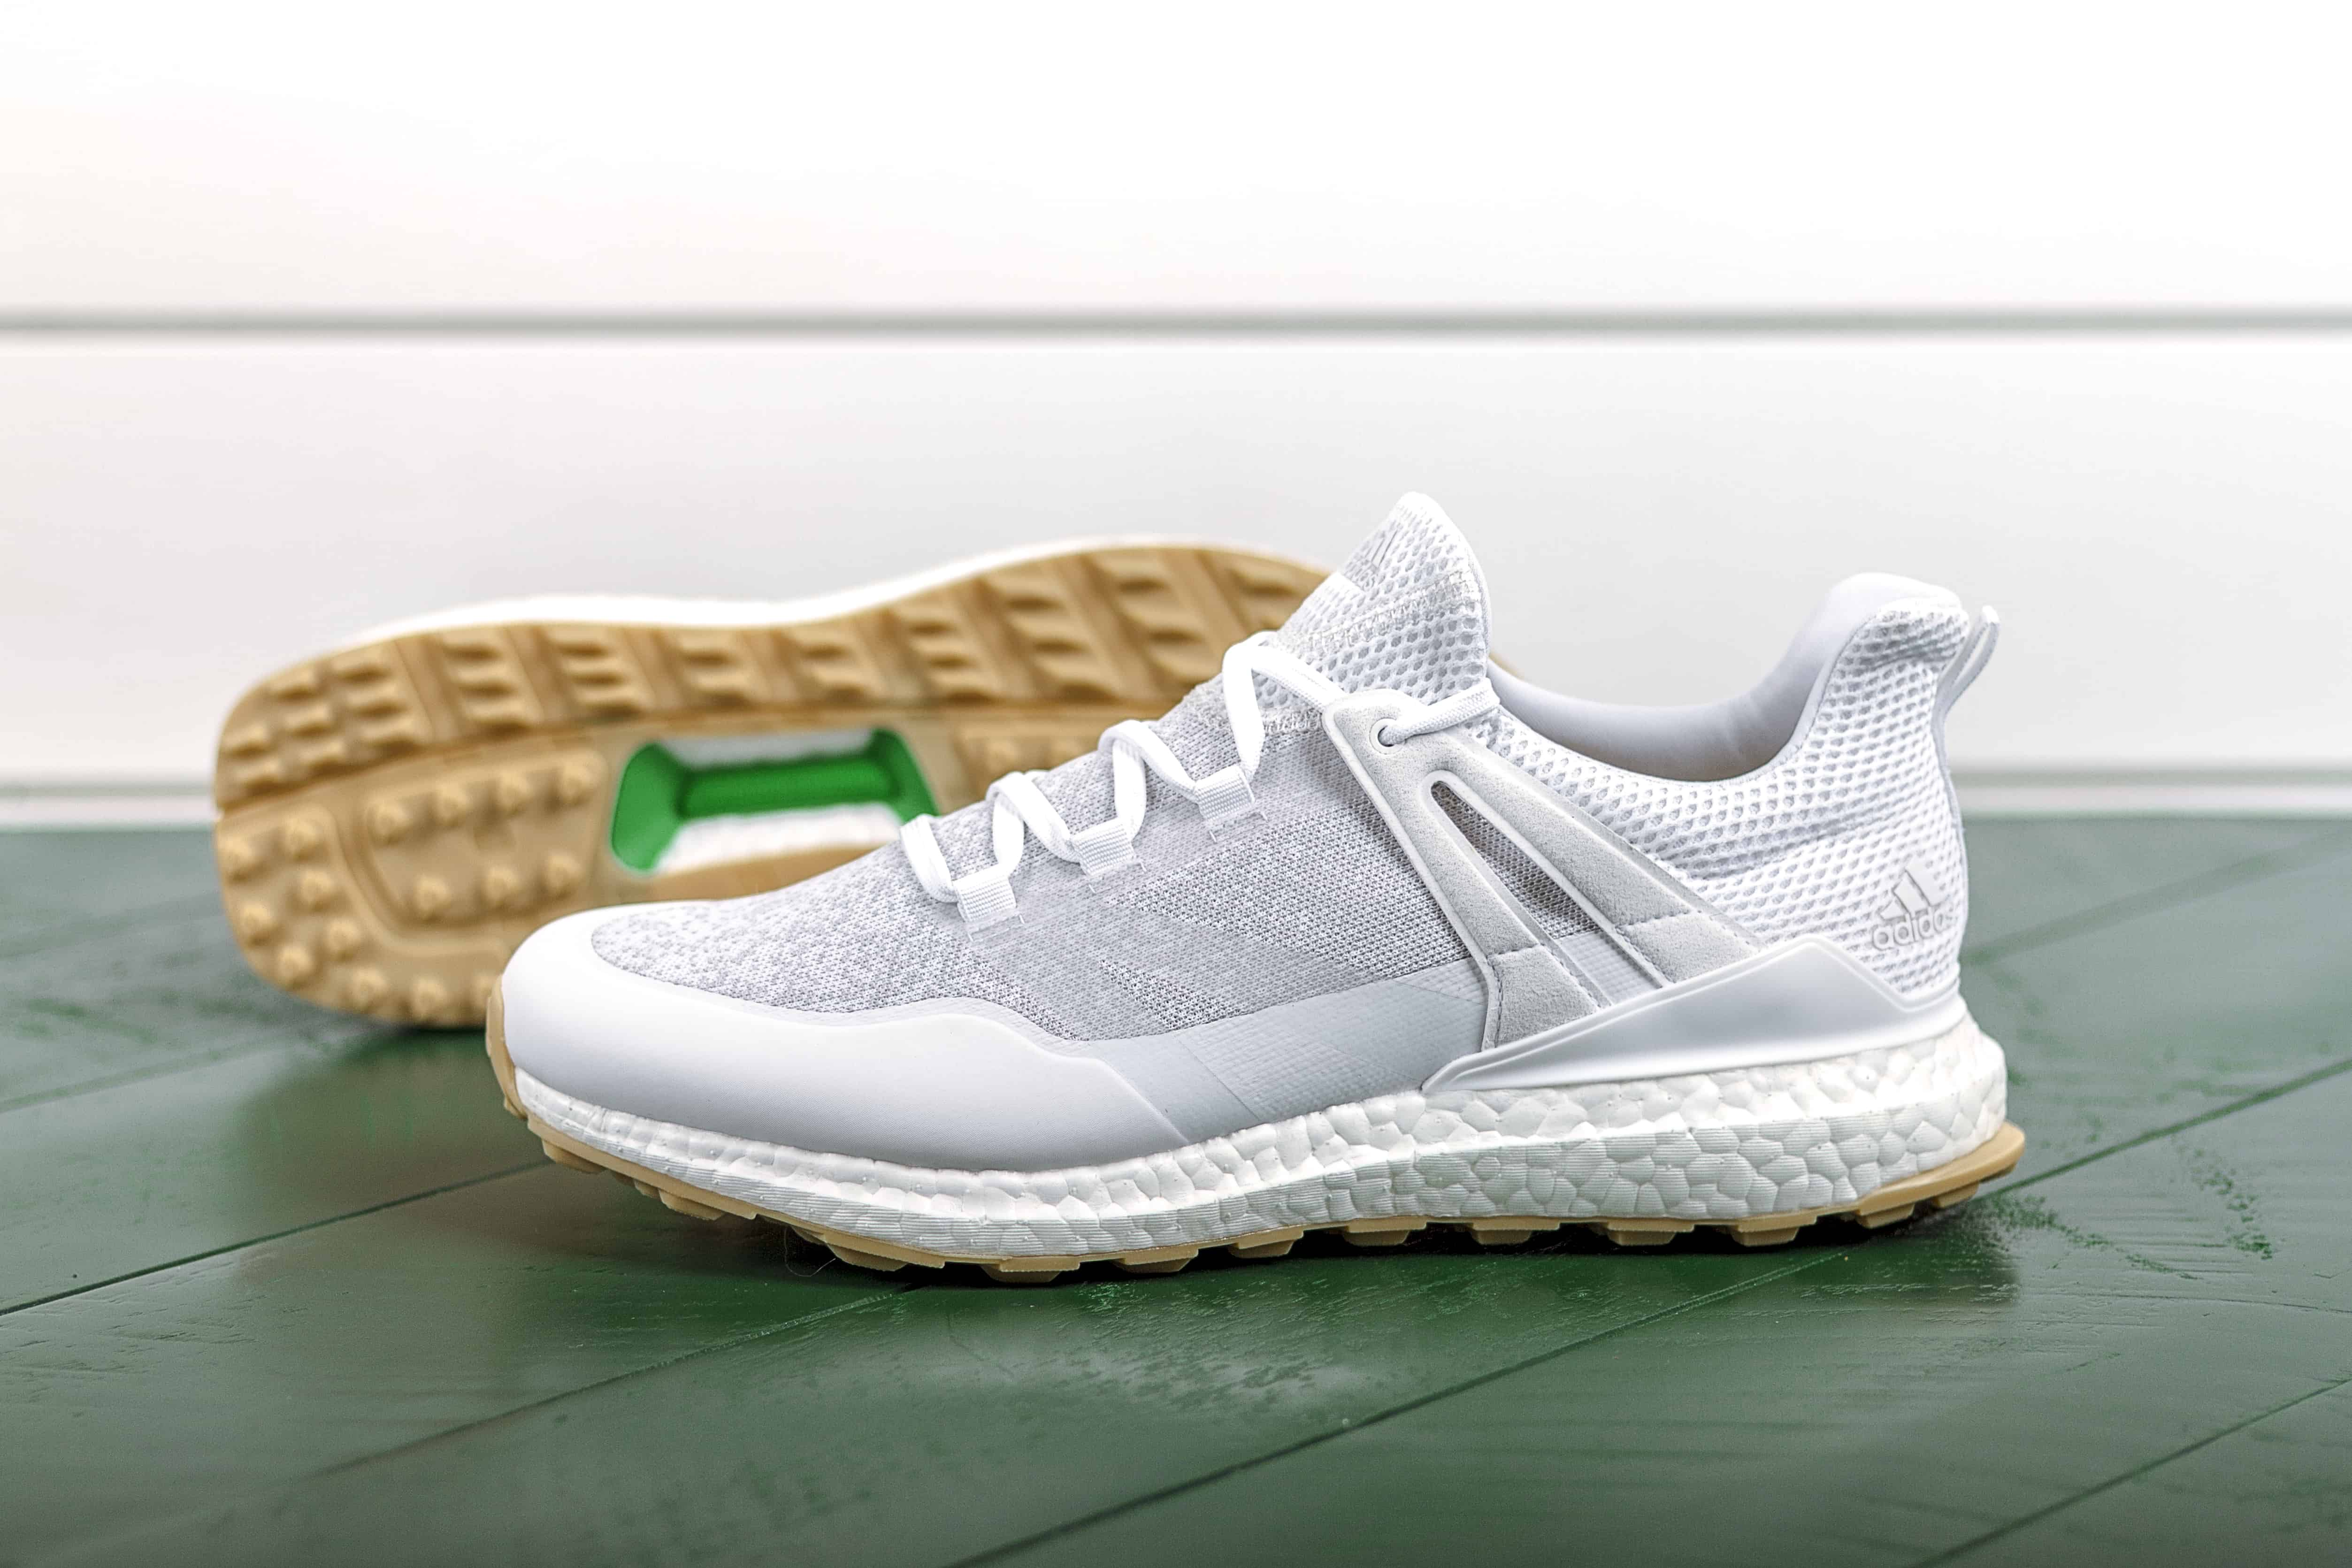 Adidas Golf Reveals Masters-Inspired Crossknit Boost Golf Shoes ...